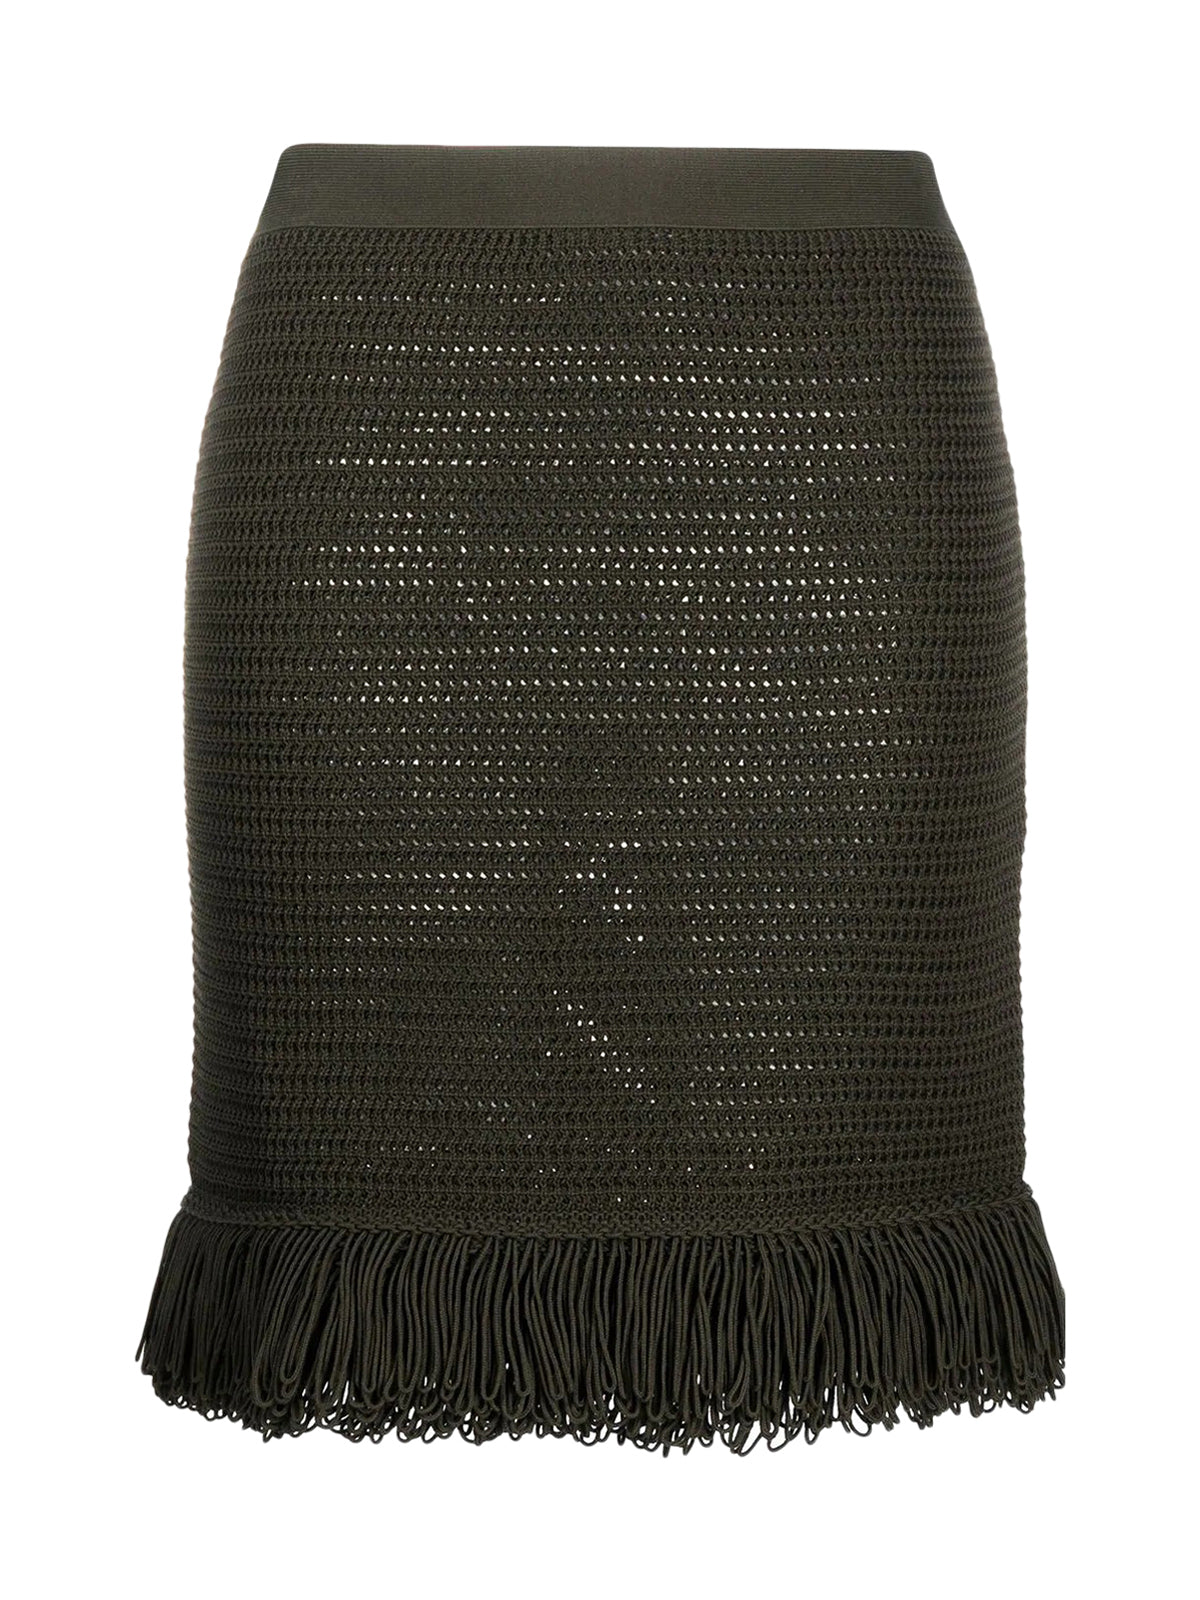 SKIRT COMPACT COTTON MESH